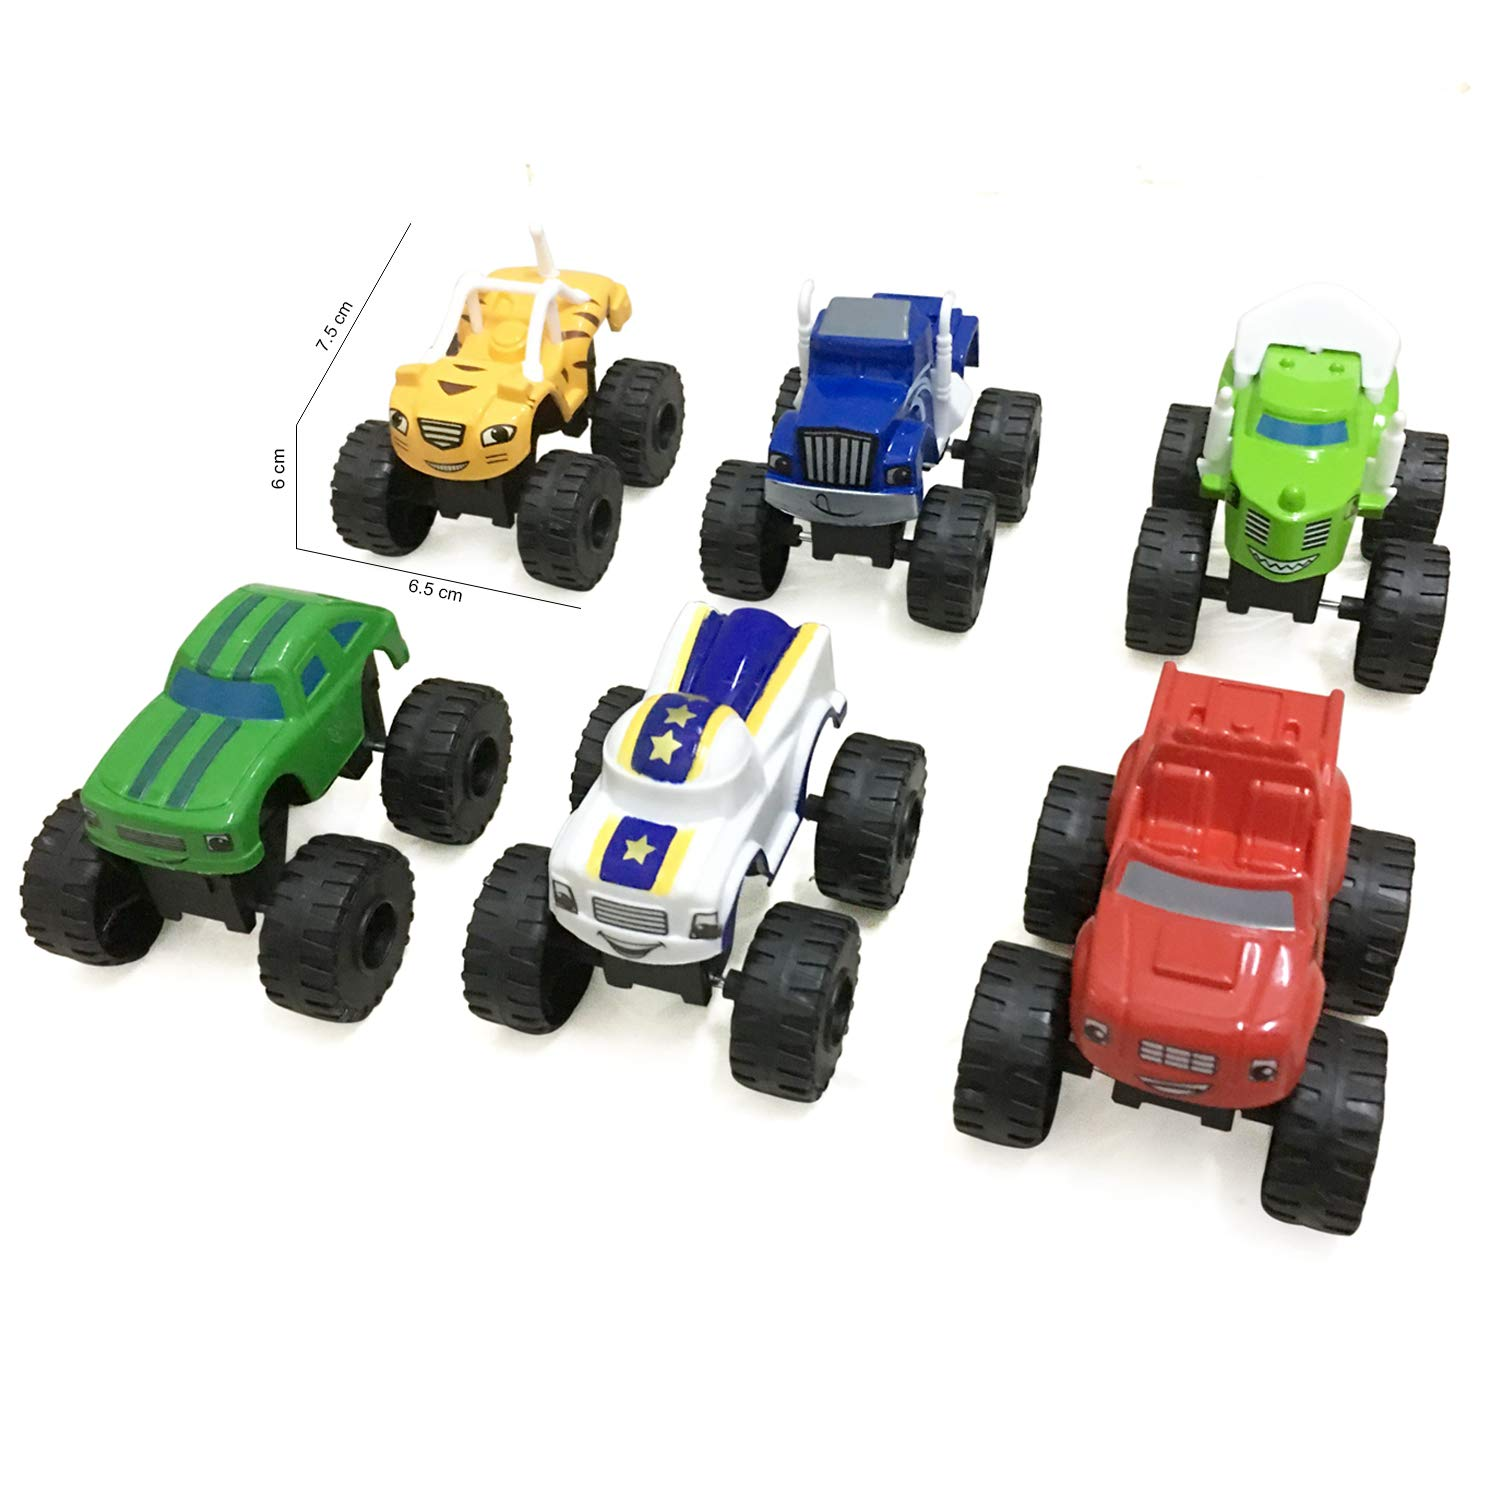 Kandall Blaze and The Monster Machines Toy Cars - 6 Piece Sets